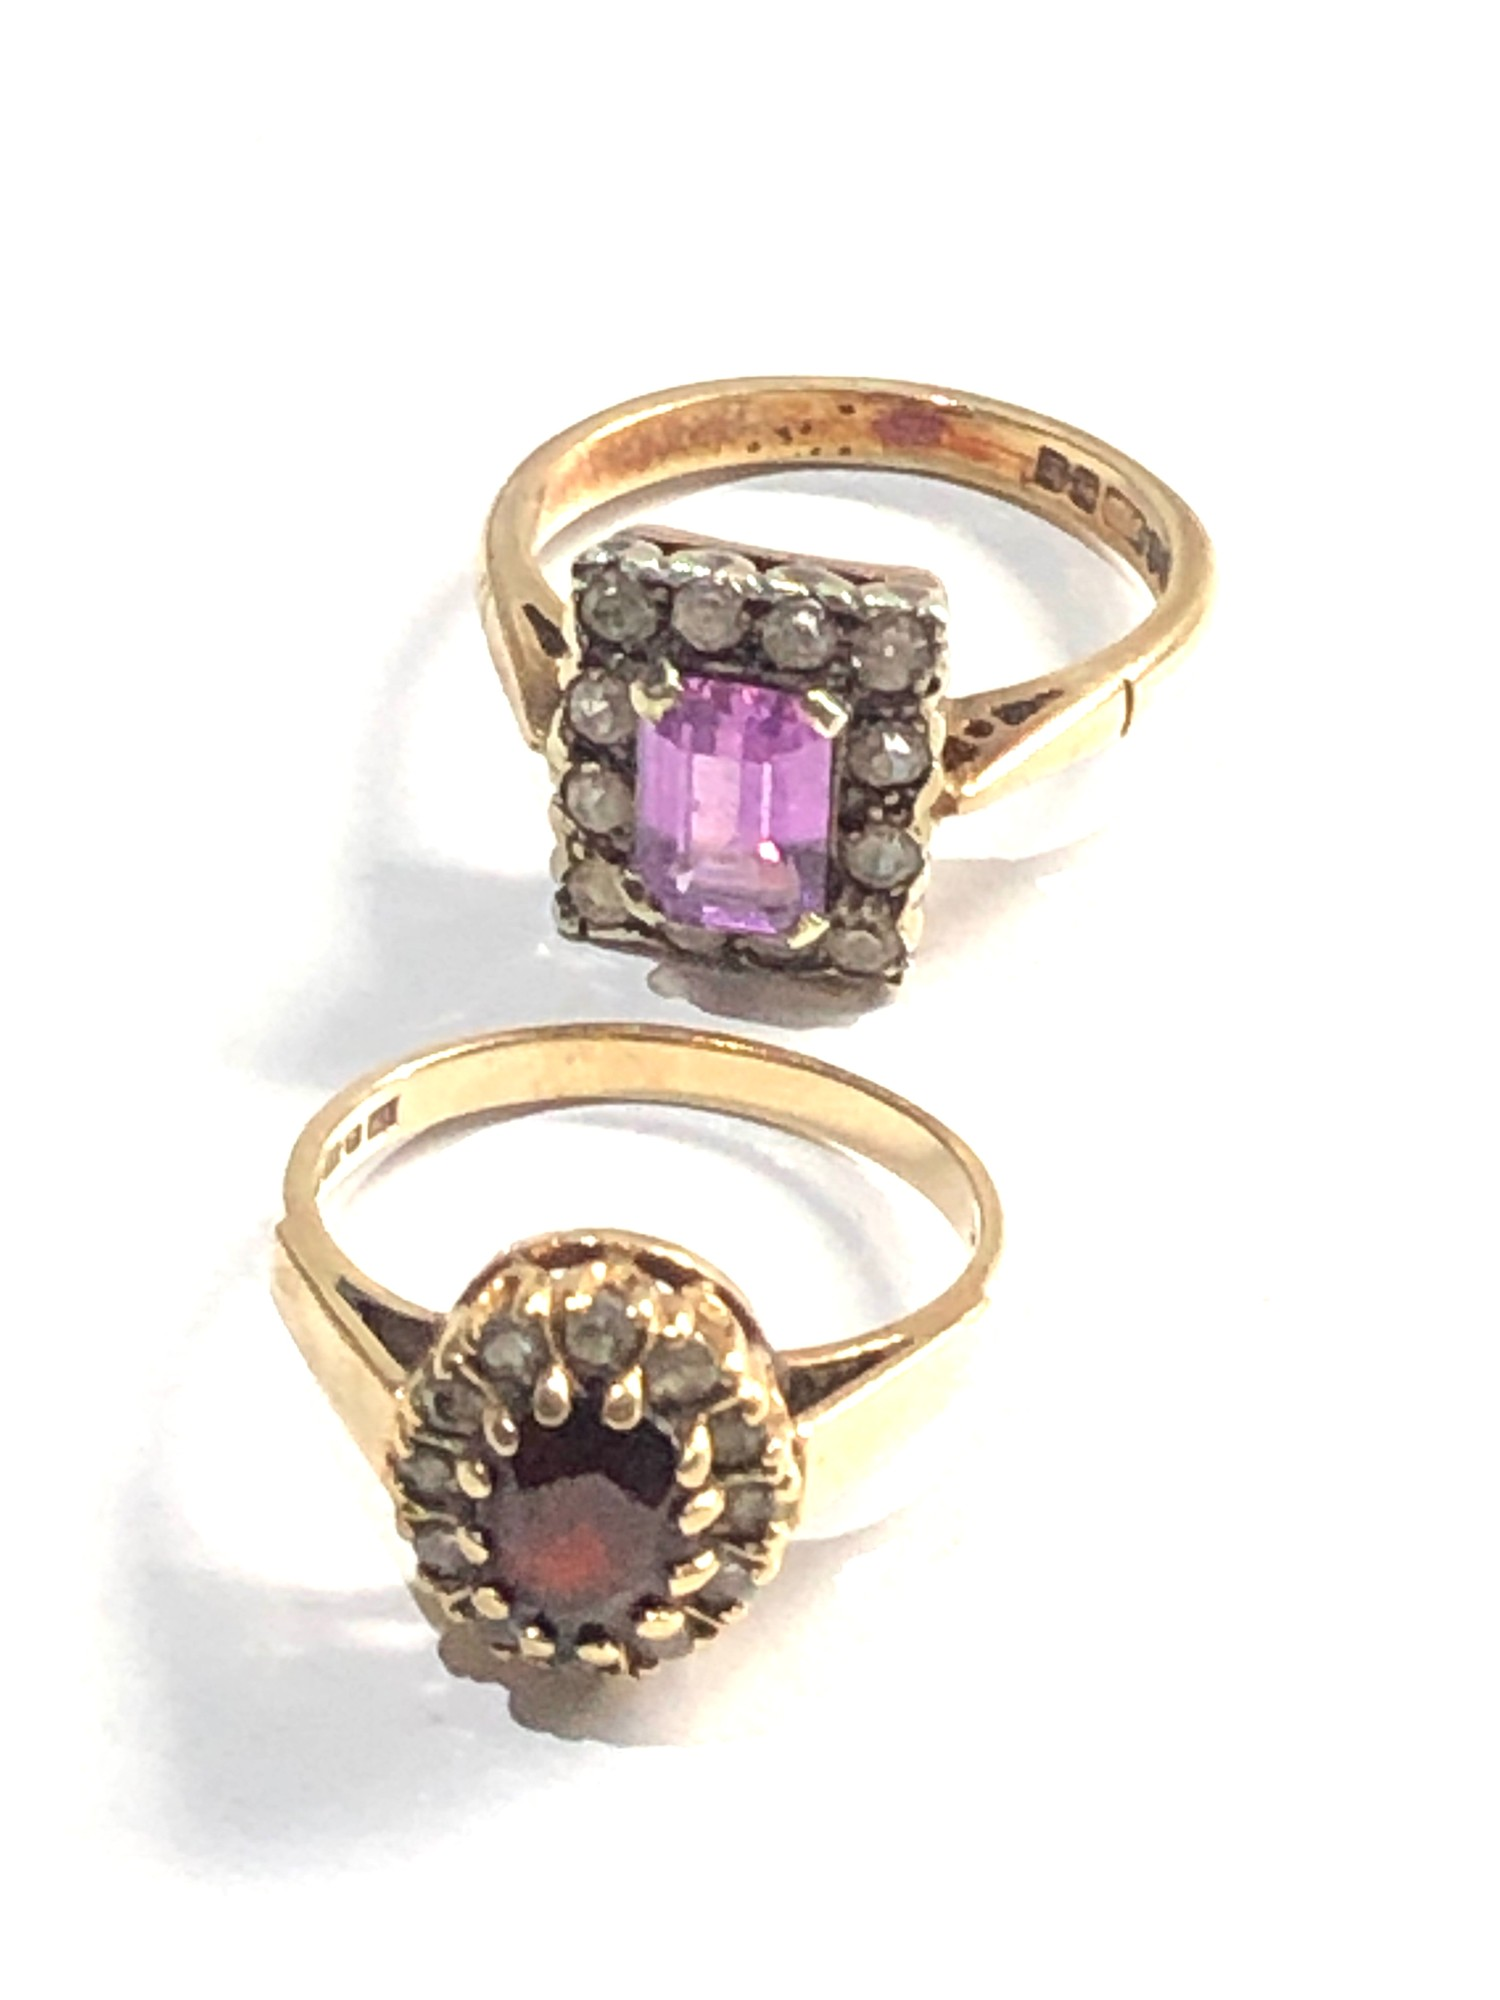 2 x 9ct gold cluster rings 6.2g - Image 2 of 3